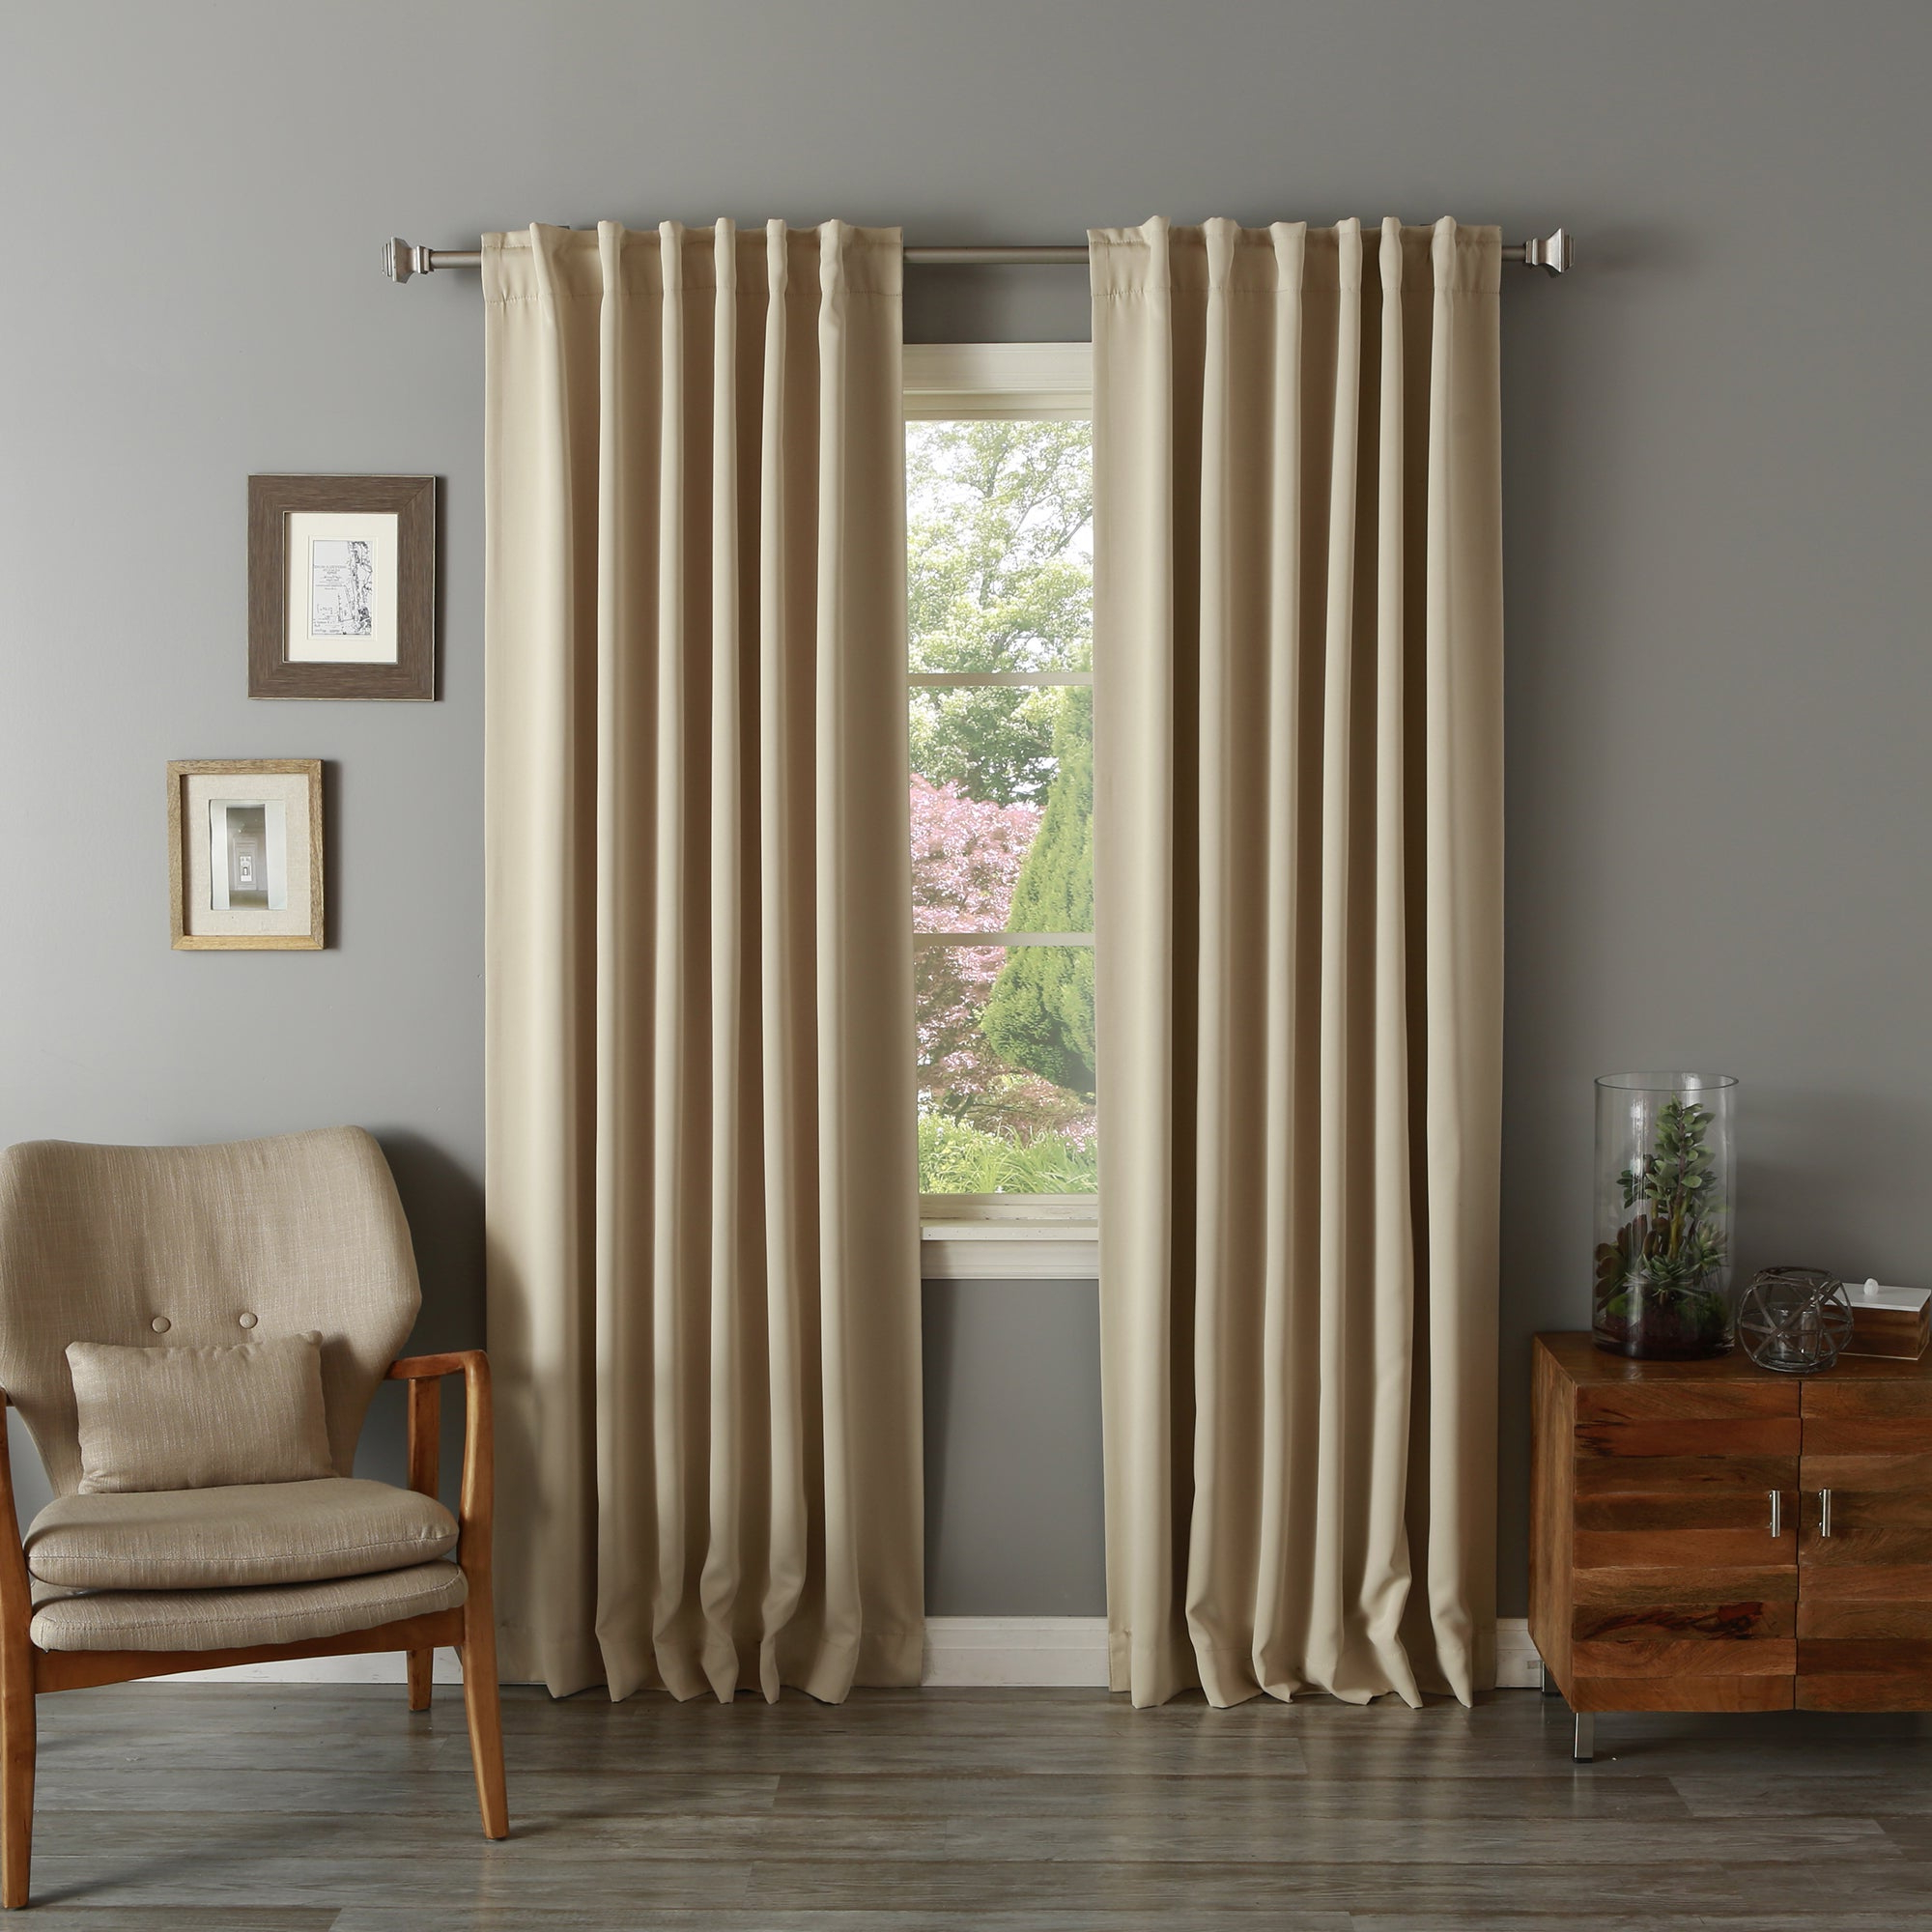 Current Aurora Home Solid Insulated Thermal Blackout Long Length Curtain Panel Pair Pertaining To Solid Insulated Thermal Blackout Long Length Curtain Panel Pairs (View 2 of 20)